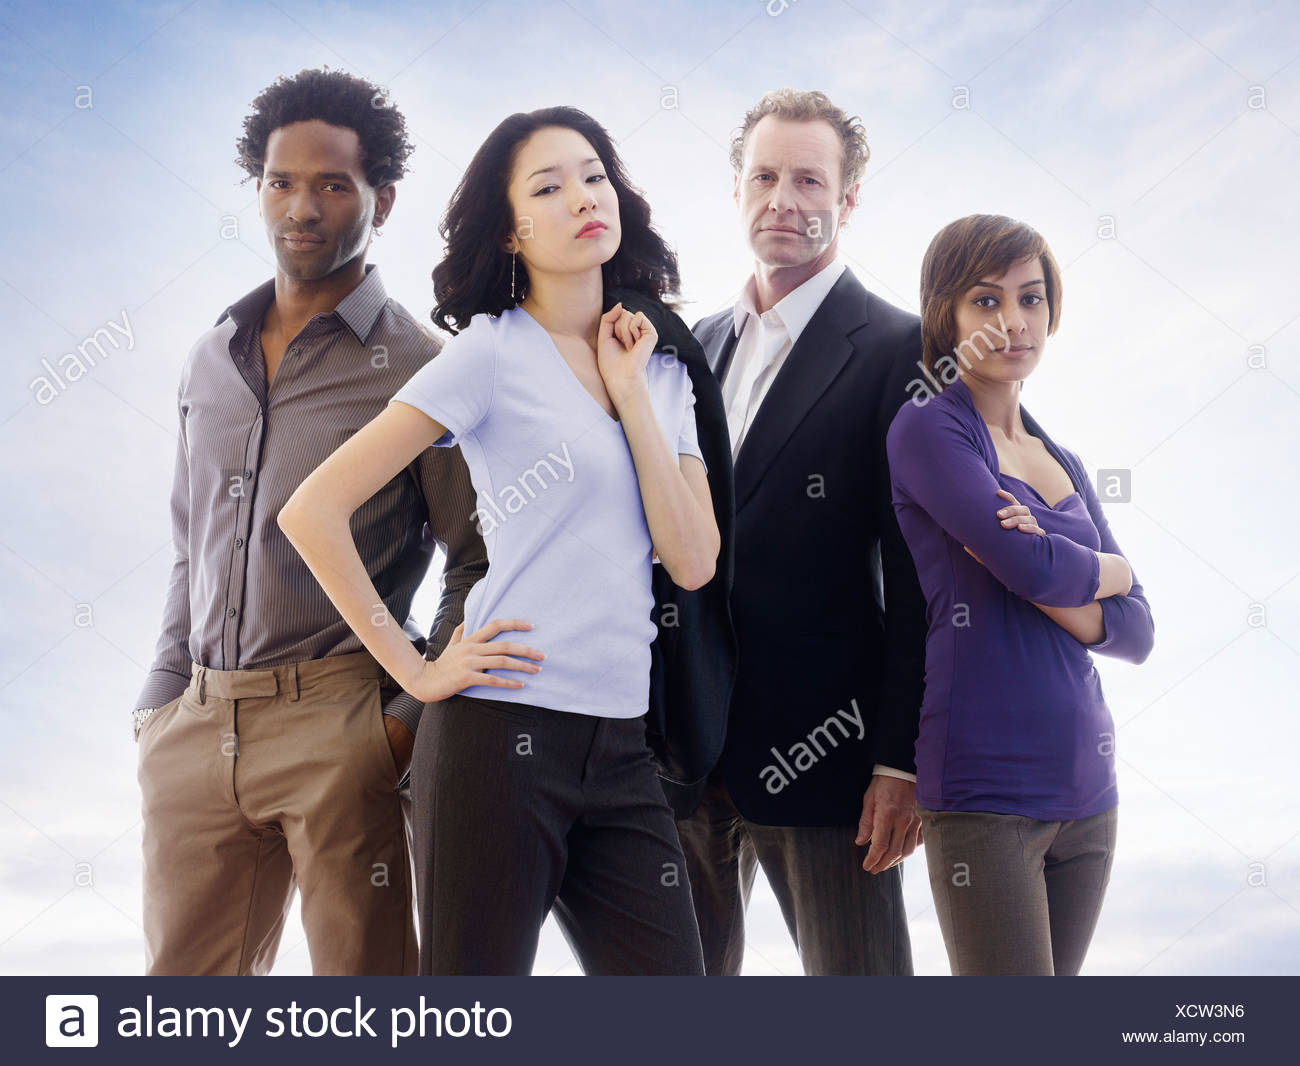 A powerful business portrait - Stock Image